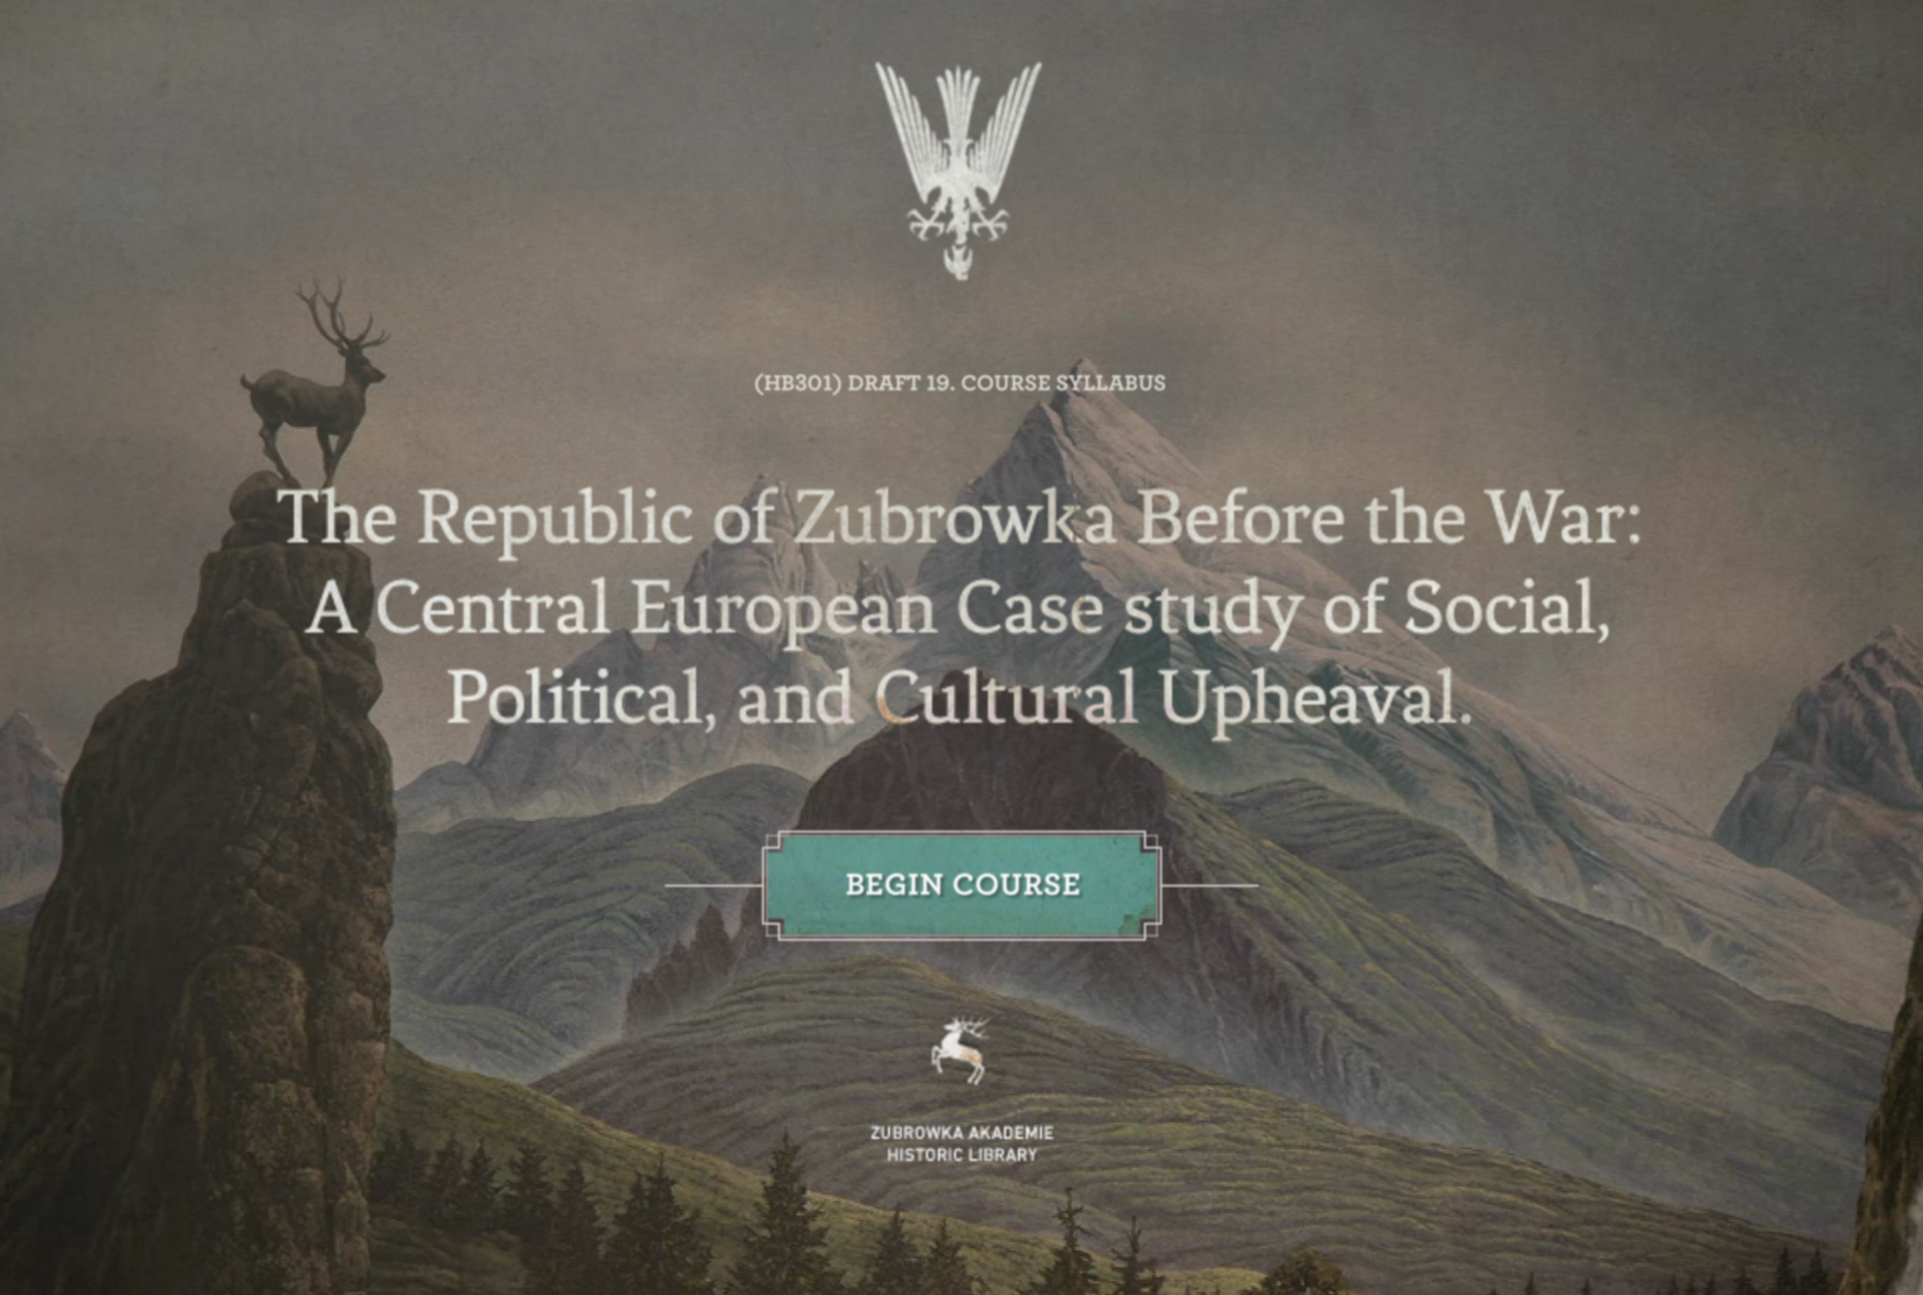 Screenshot of the website for the Republic of Zubrowka: http://www.akademiezubrowka.com/